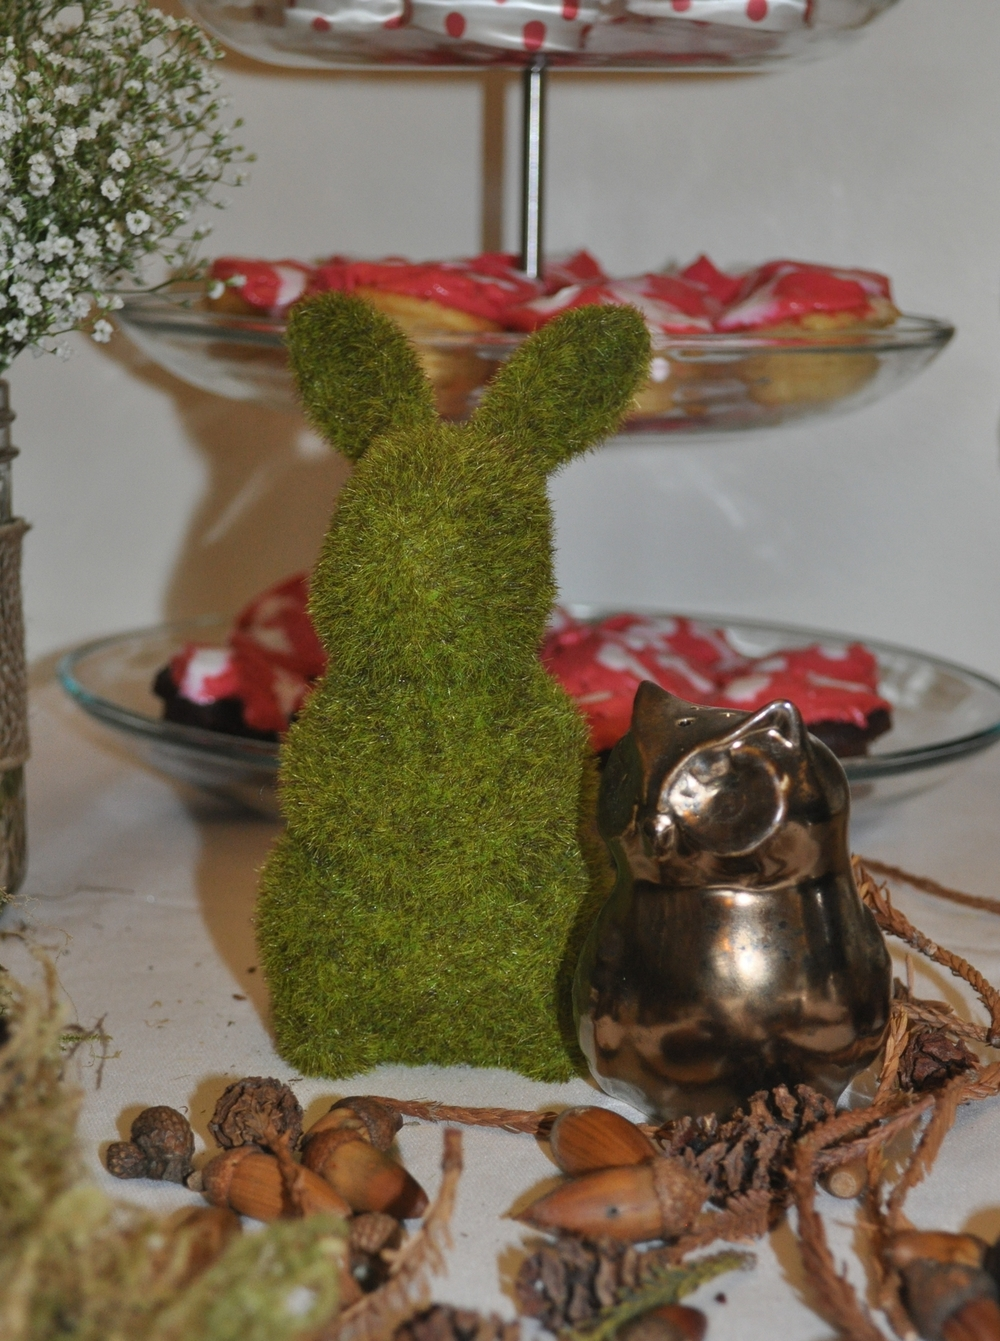 Faux  moss  rabbit  and owl pepper shaker from Target